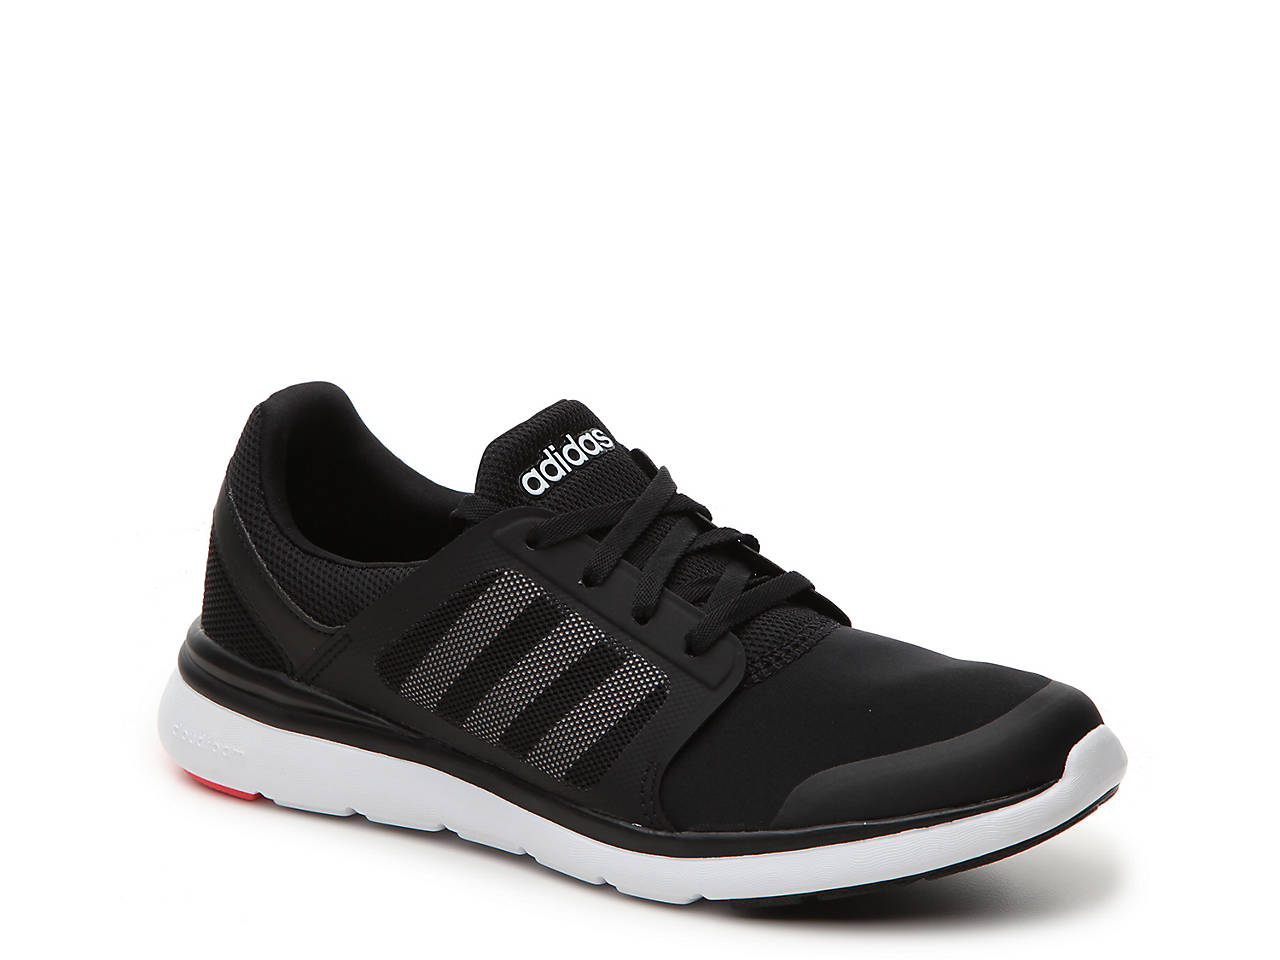 adidas cloudfoam xpression women's shoes